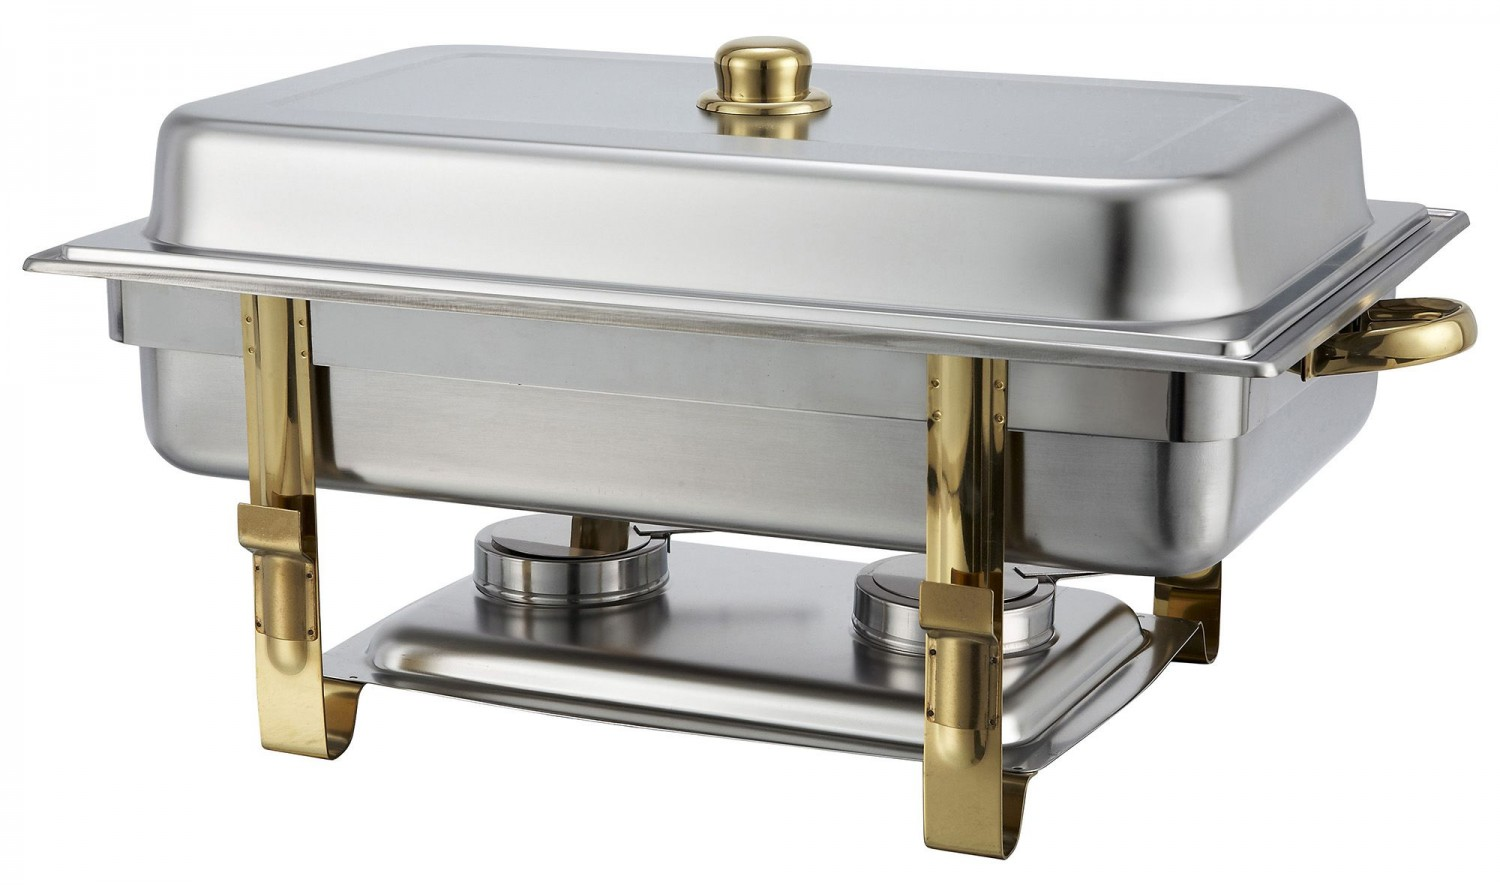 Winco 201 Oblong 8 Quart Chafer with Gold Accents